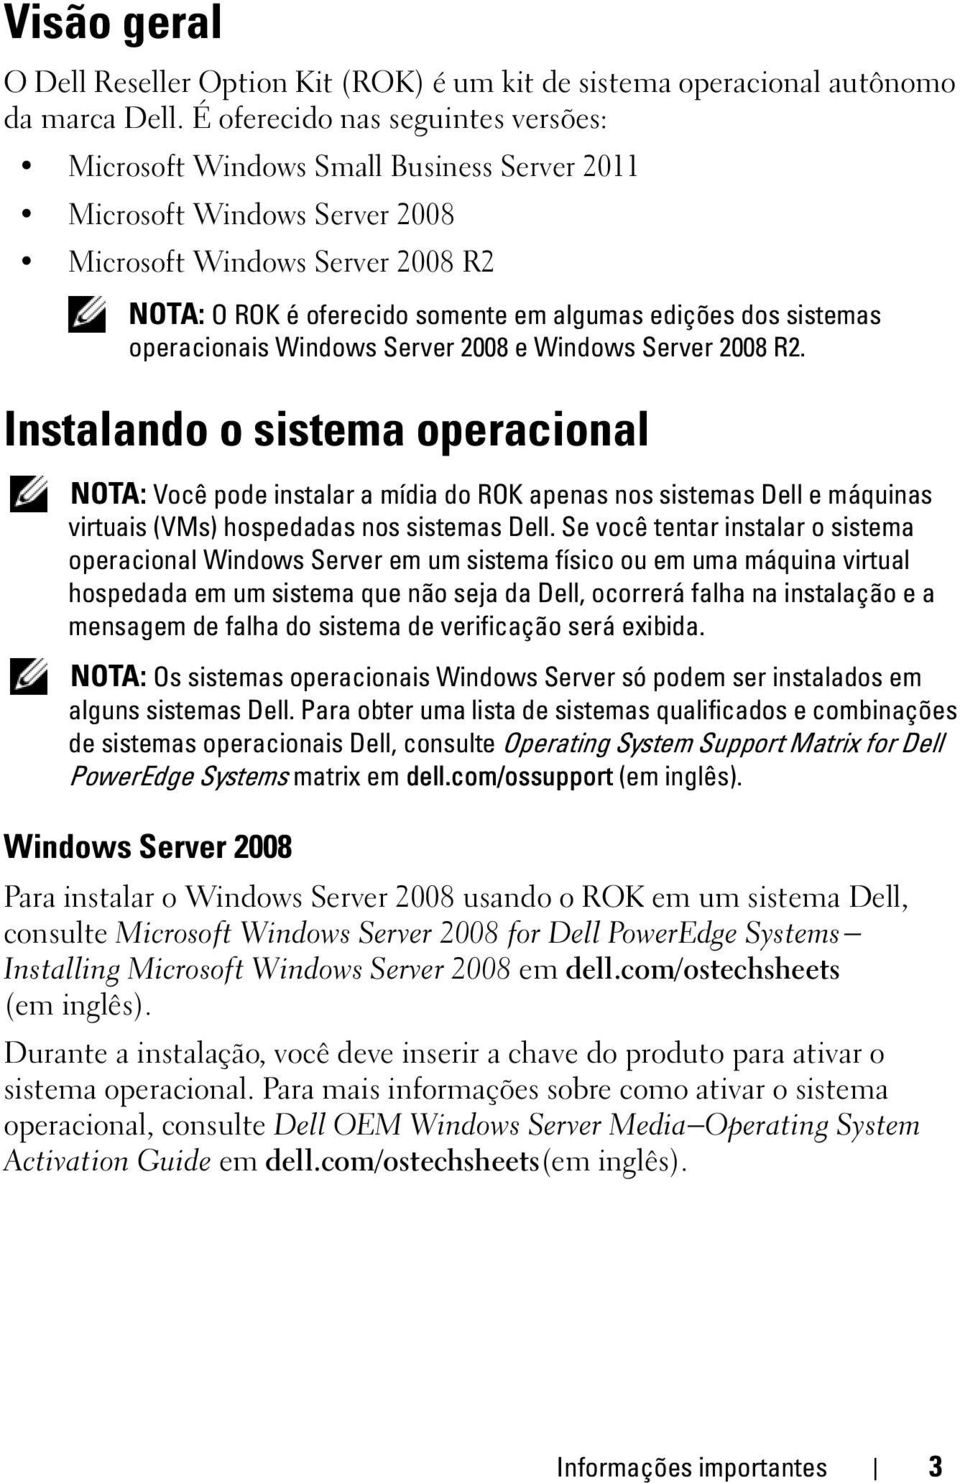 sistemas operacionais Windows Server 2008 e Windows Server 2008 R2.